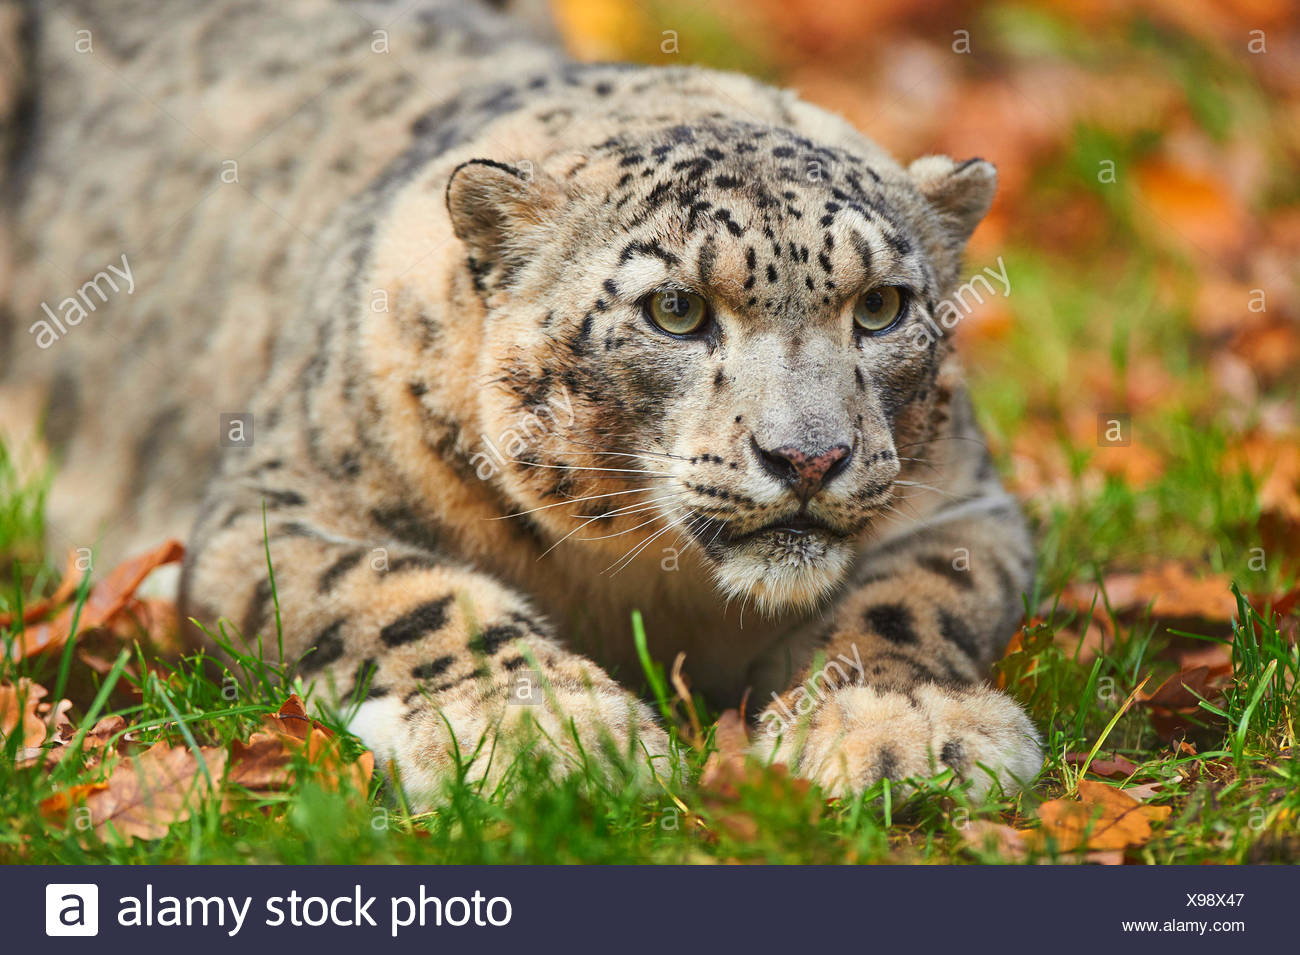 snow leopard (Uncia uncia, Panthera uncia), leopardess lying in a meadow - Stock Image